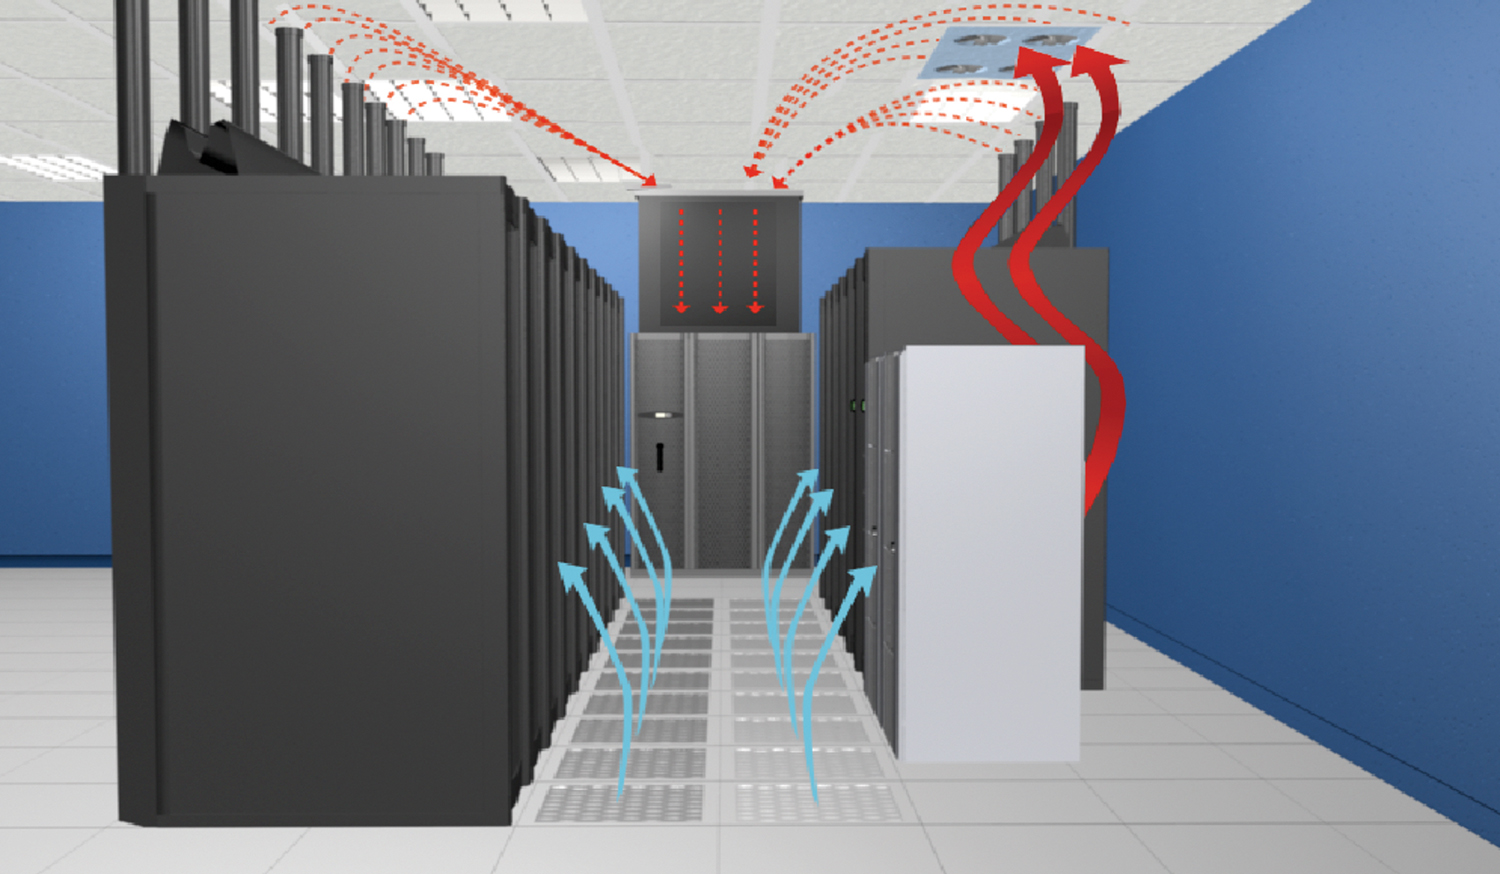 Performance Exhaust Systems >> Data Center Cooling: CRAC/CRAH redundancy, capacity, and selection metrics - Uptime Institute Blog